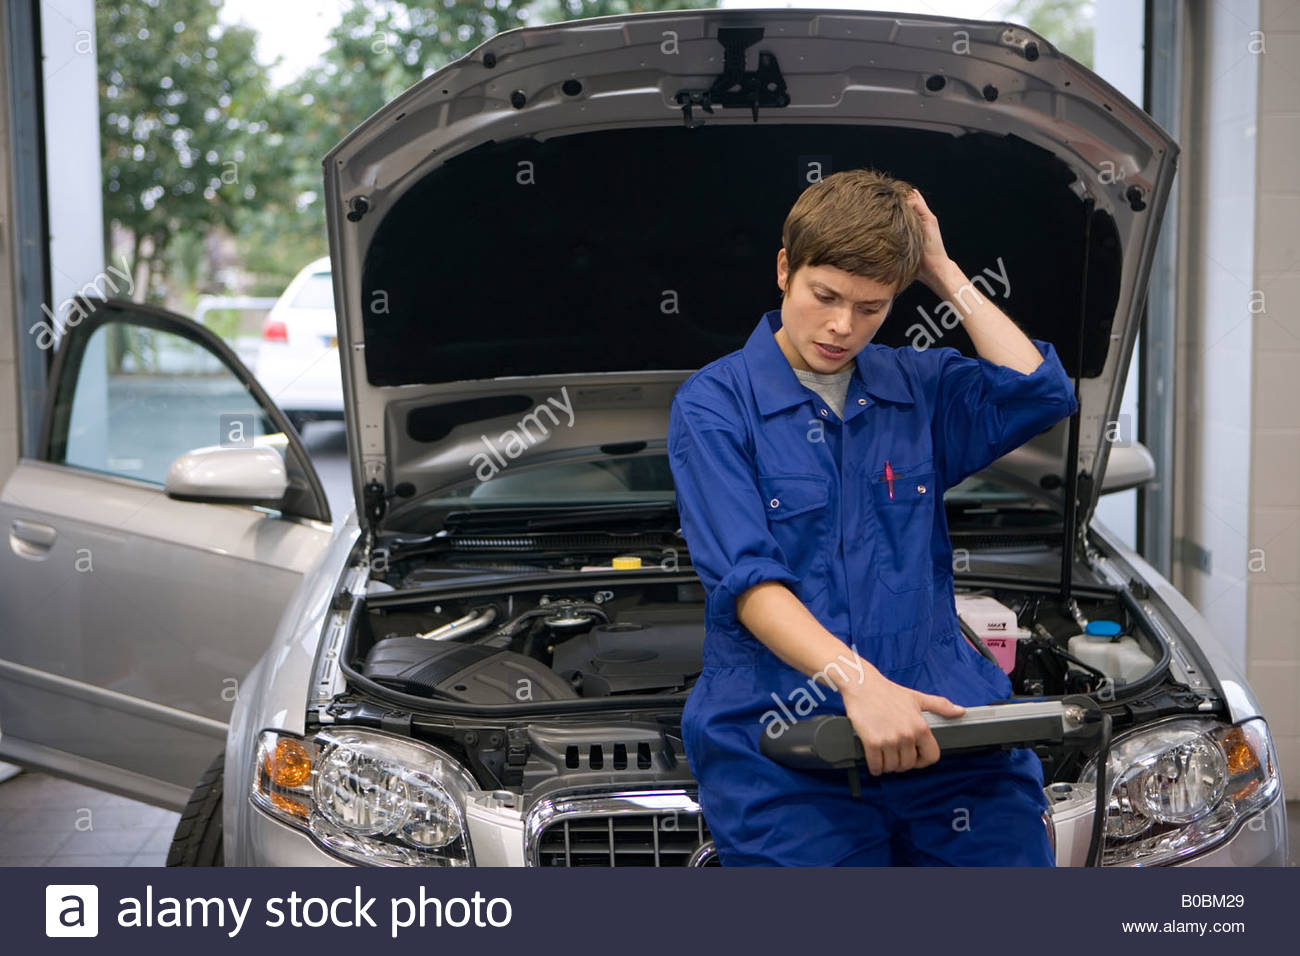 Female mechanic looking at diagnostic computer by open bonnet of car, hand to head - Stock Image